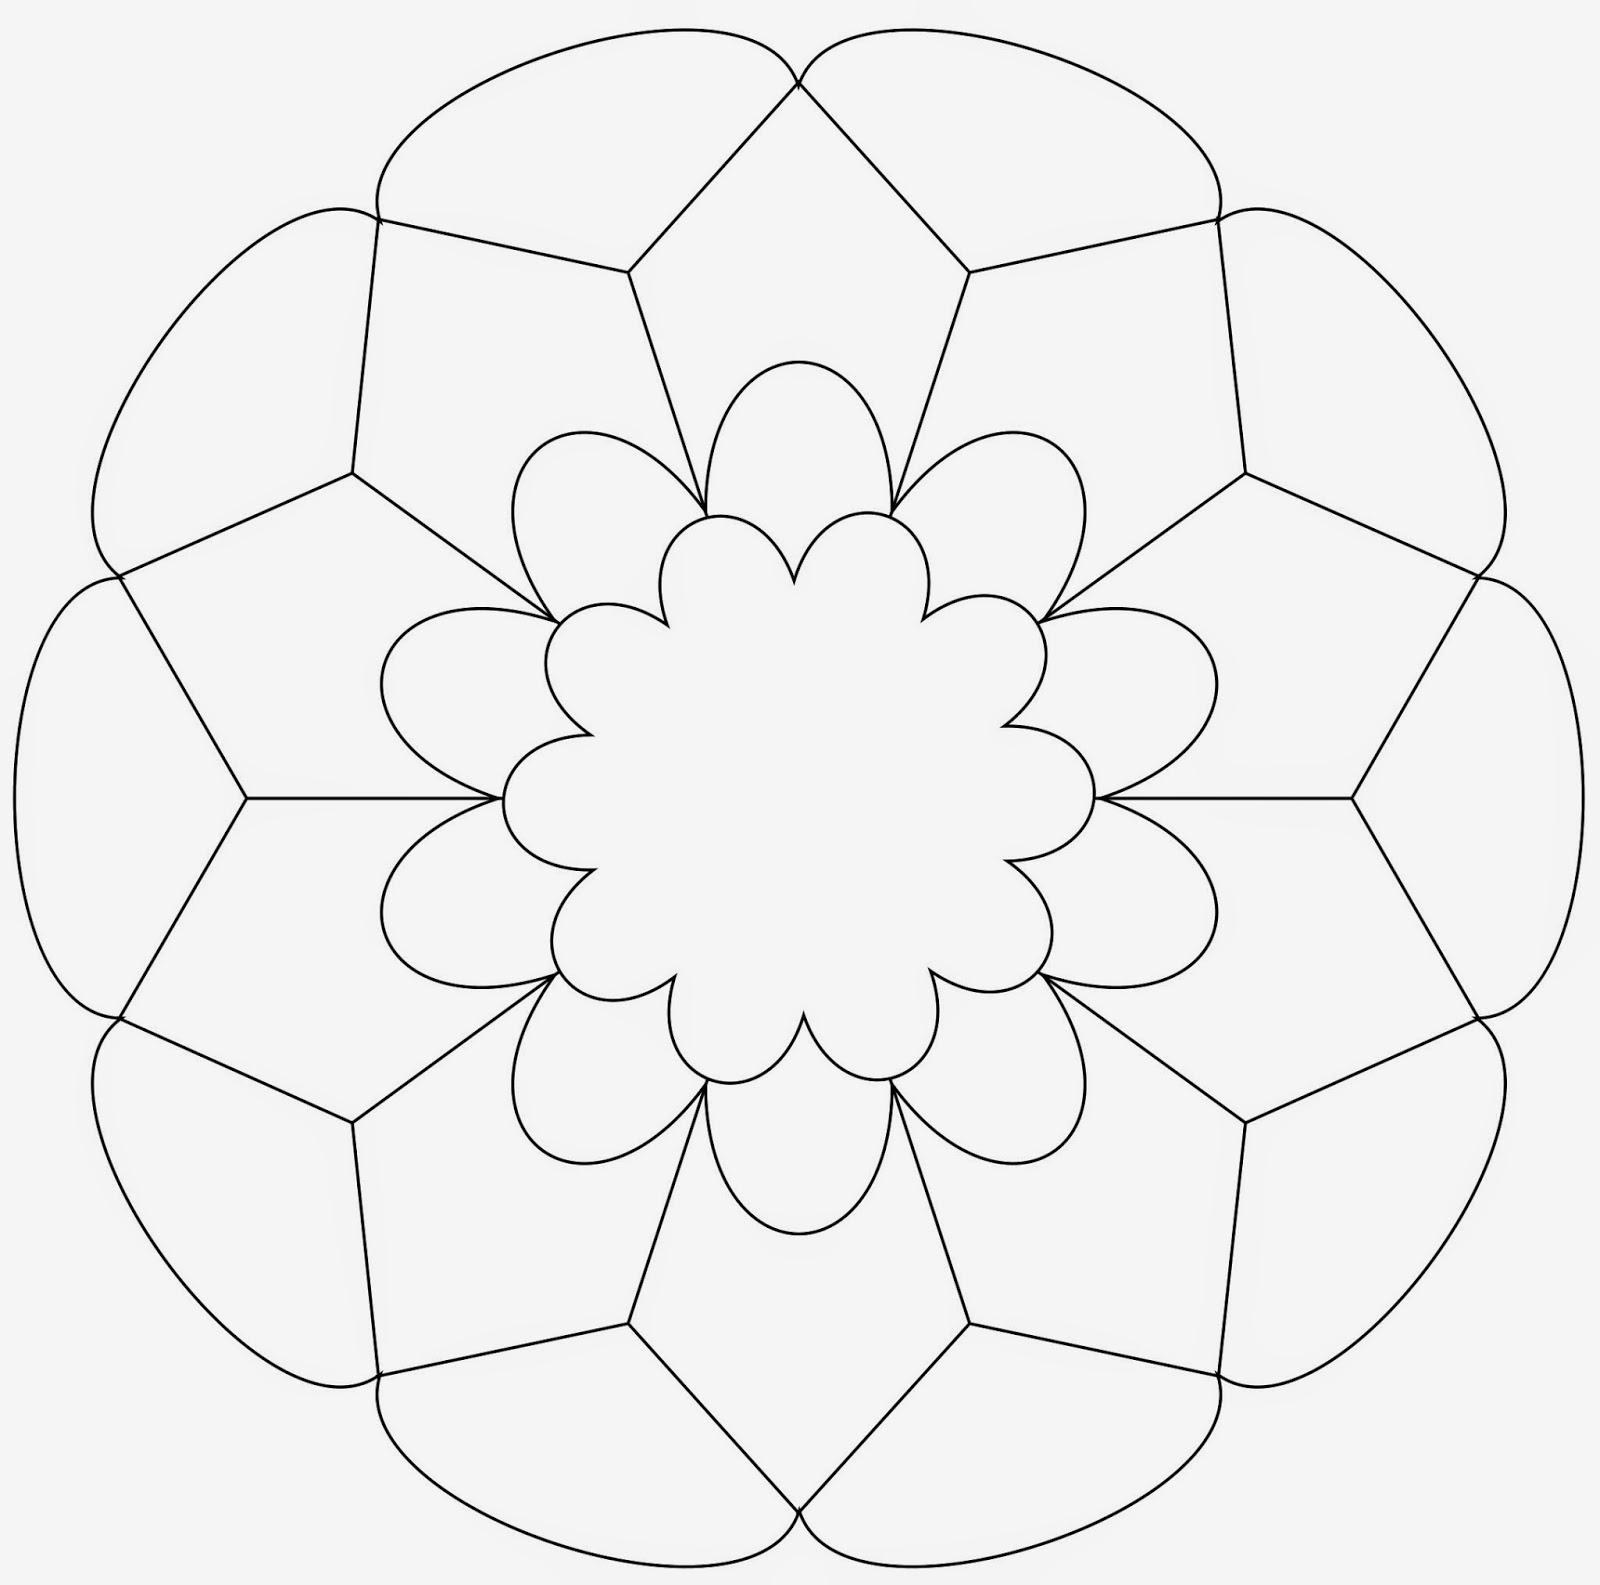 The o'jays, Geometry and Mandalas on Pinterest